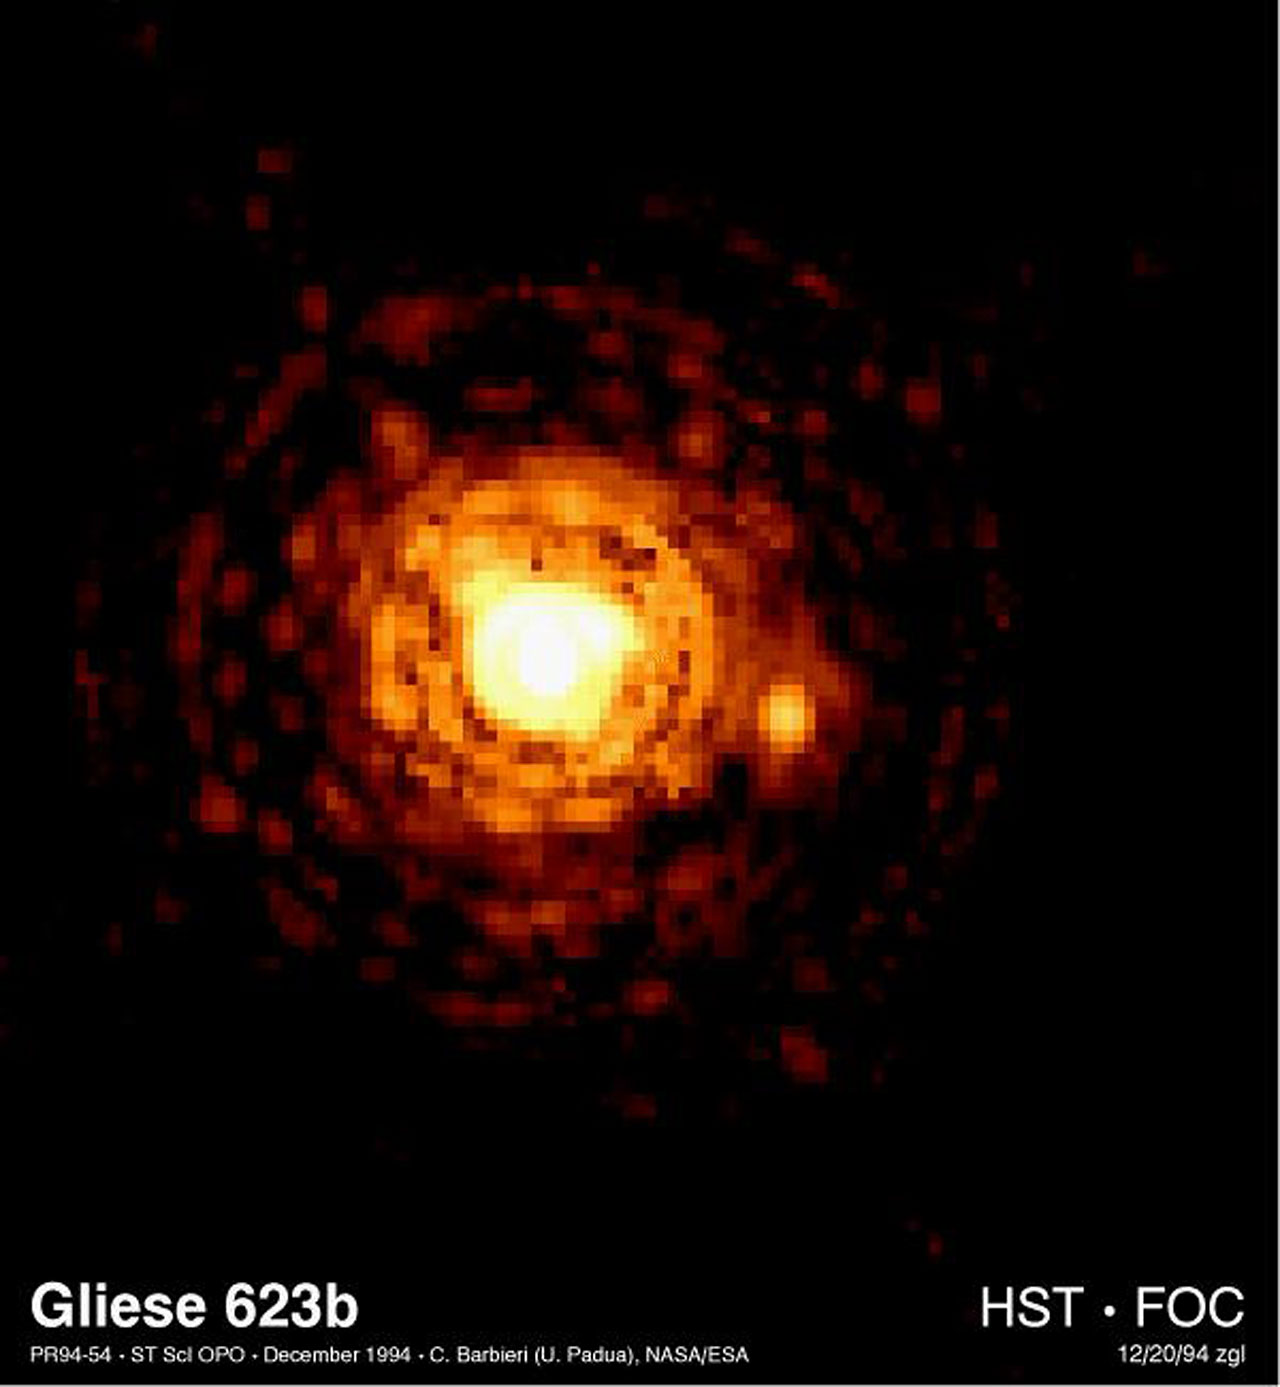 smallest stars Milky Way Galaxy binary system two red dwarfs Gliese 623b